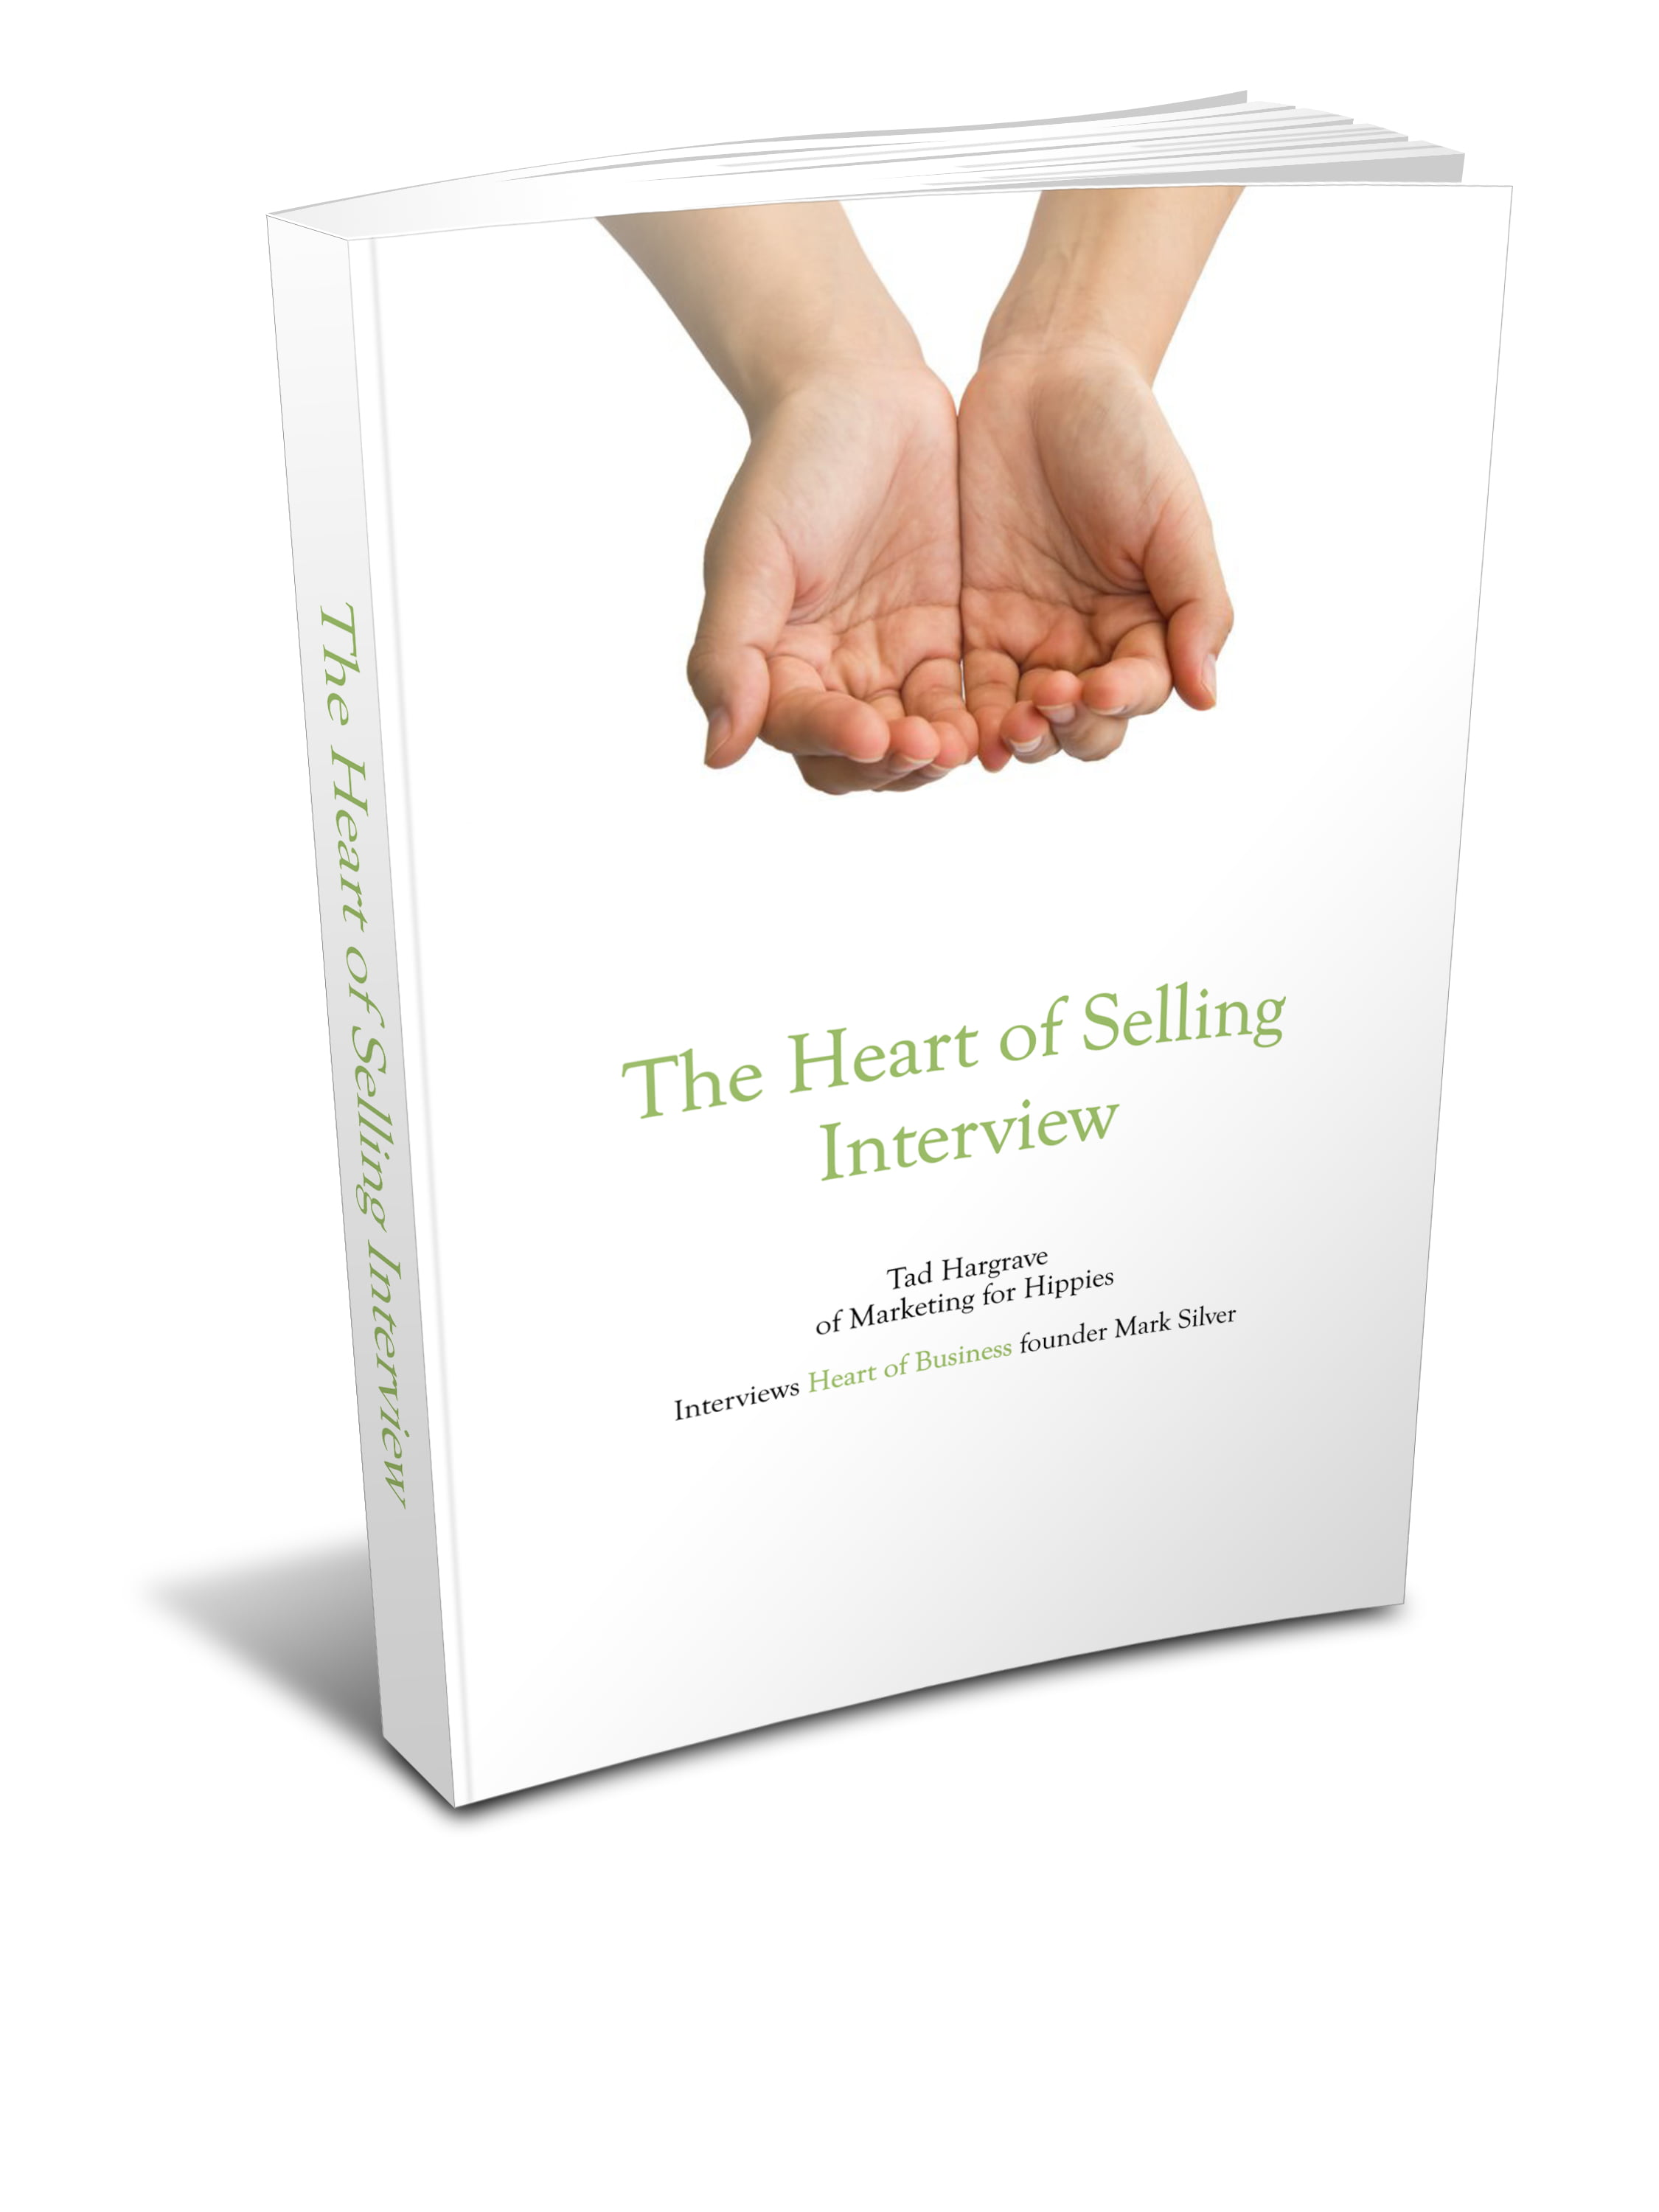 The Heart of Selling: An Interview with Mark Silver